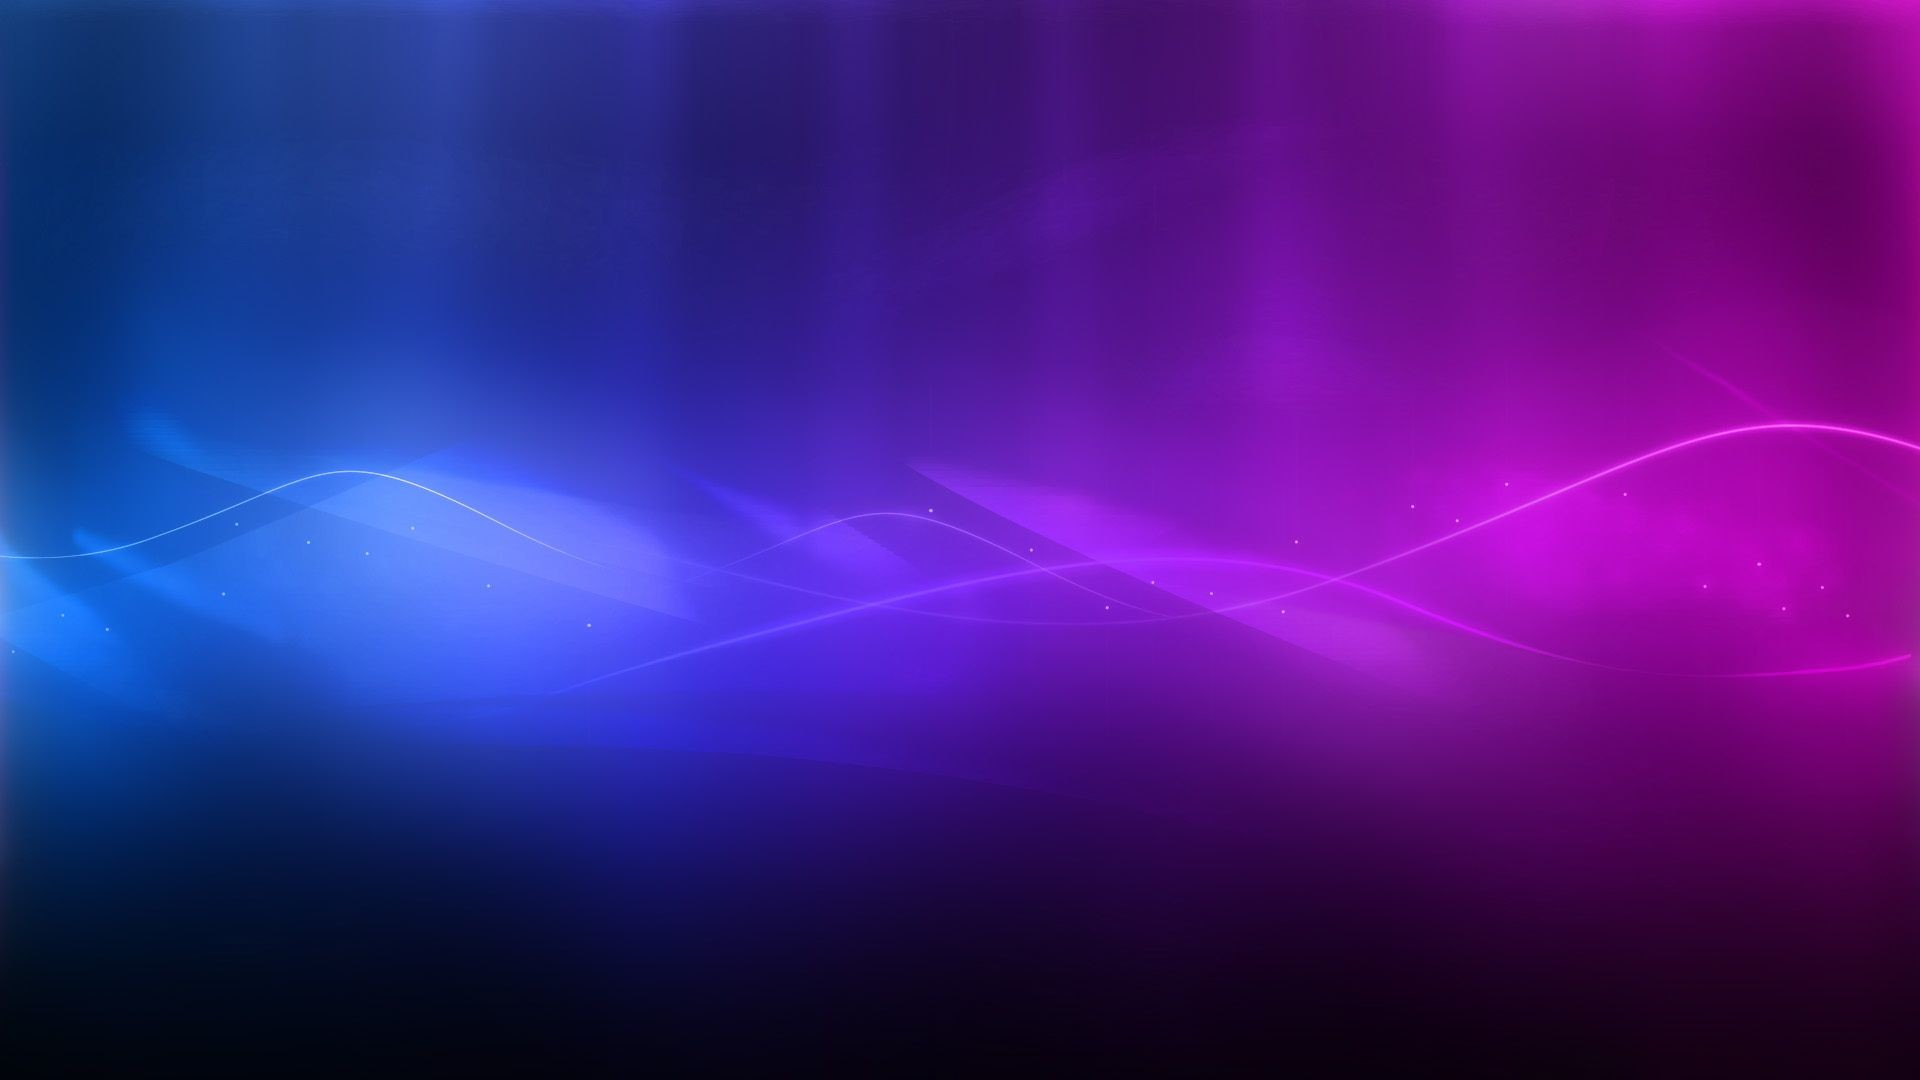 Pink Purple And Blue Backgrounds – Wallpaper Cave